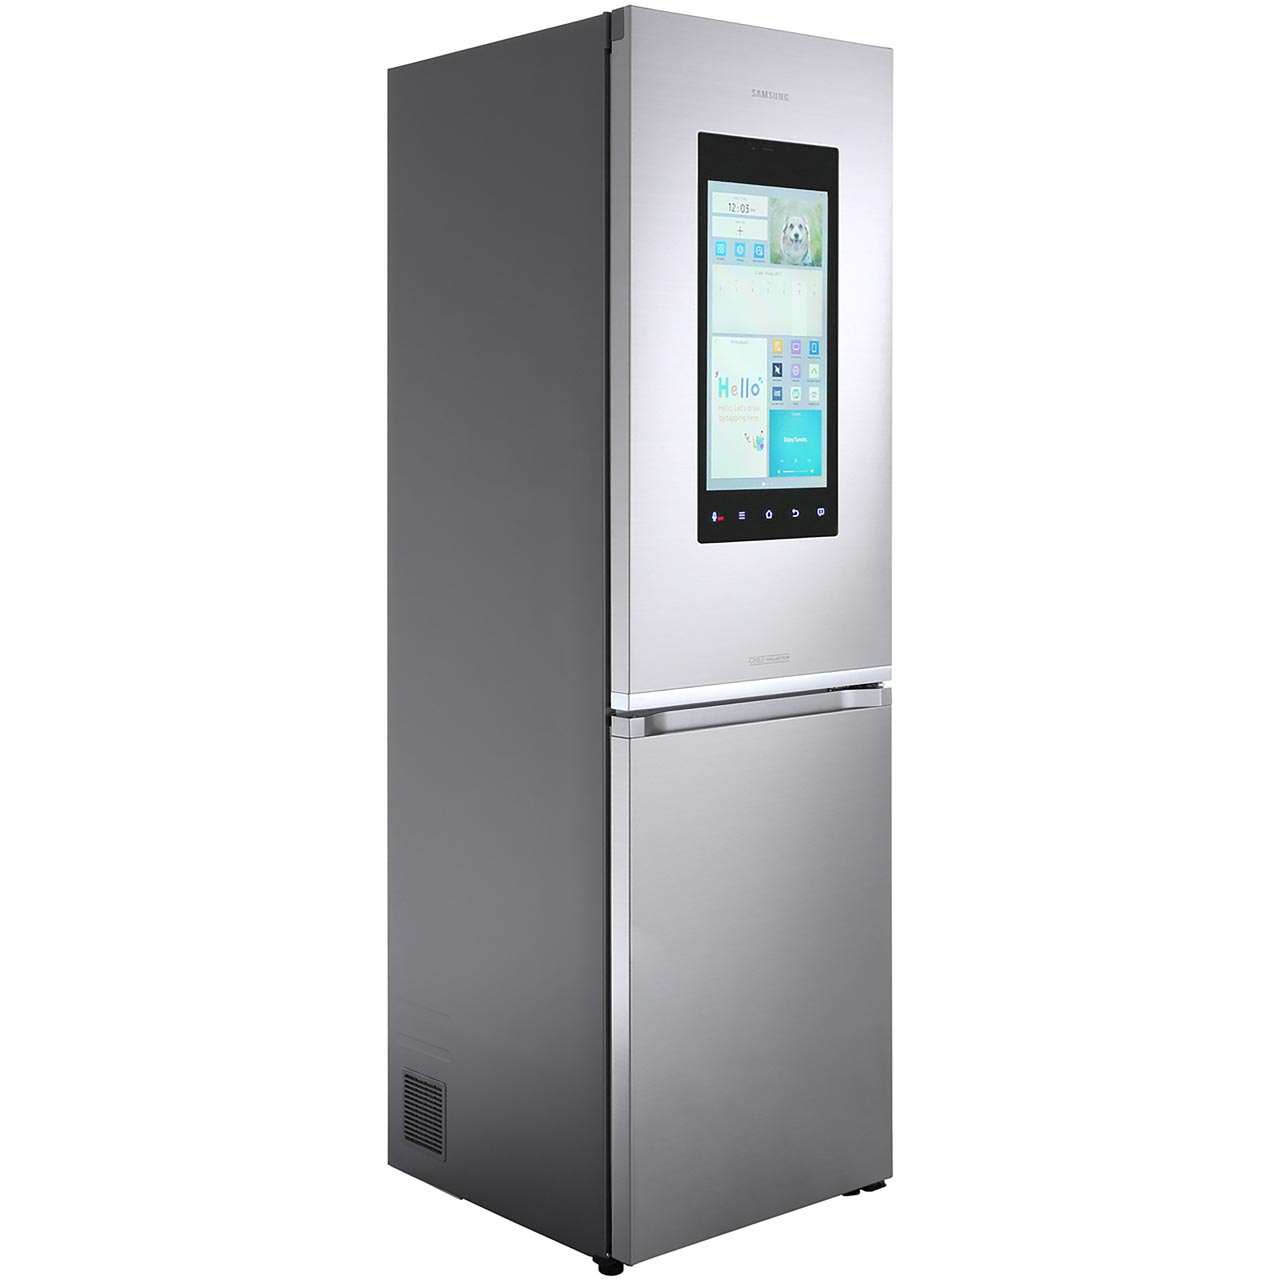 Samsung Rb38m7998s4 Family Hub A Fridge Freezer Frost